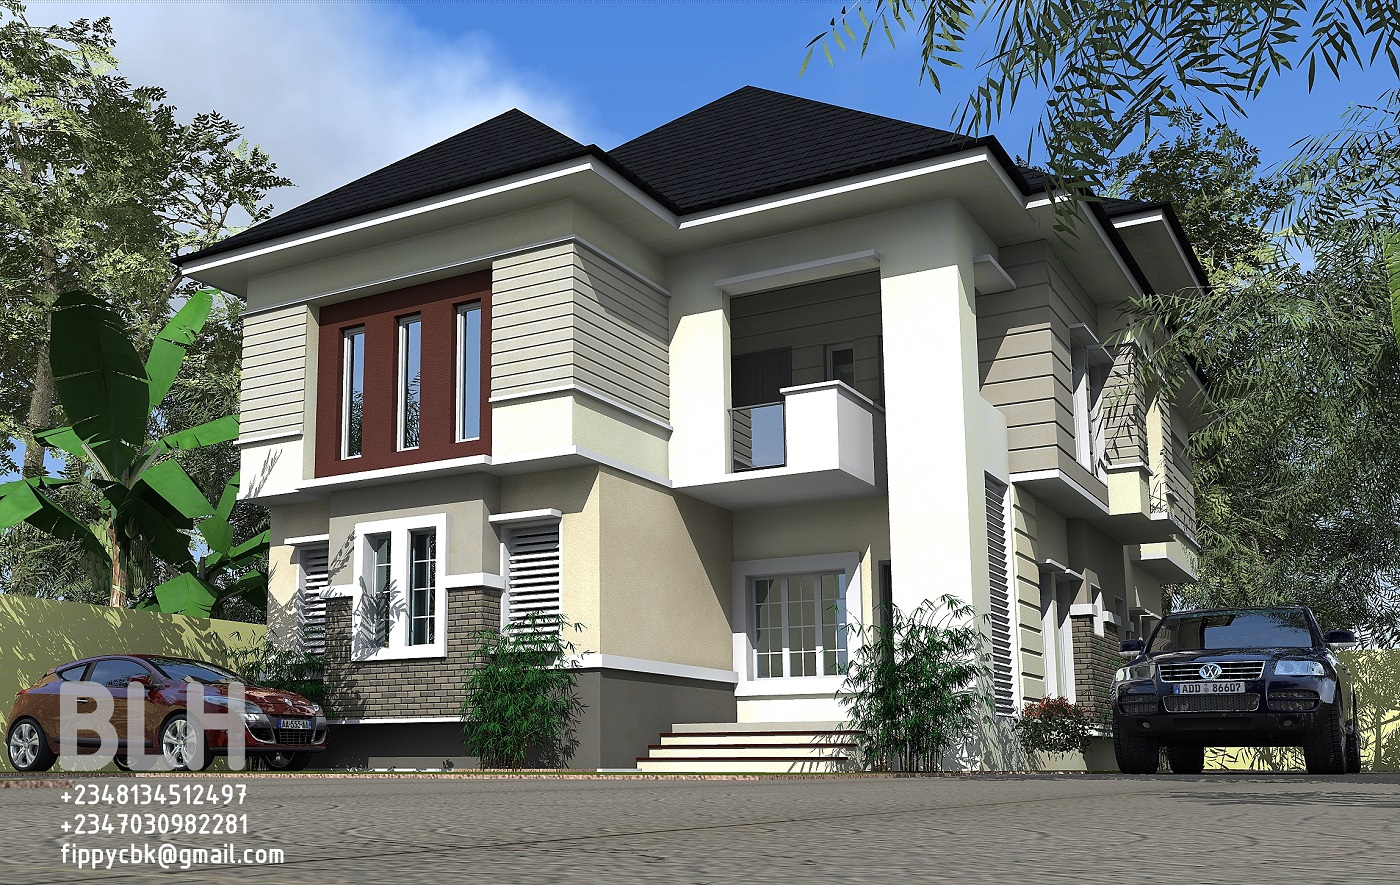 Architectural designs by blacklakehouse 4 bedroom duplex for Duplex architectural designs